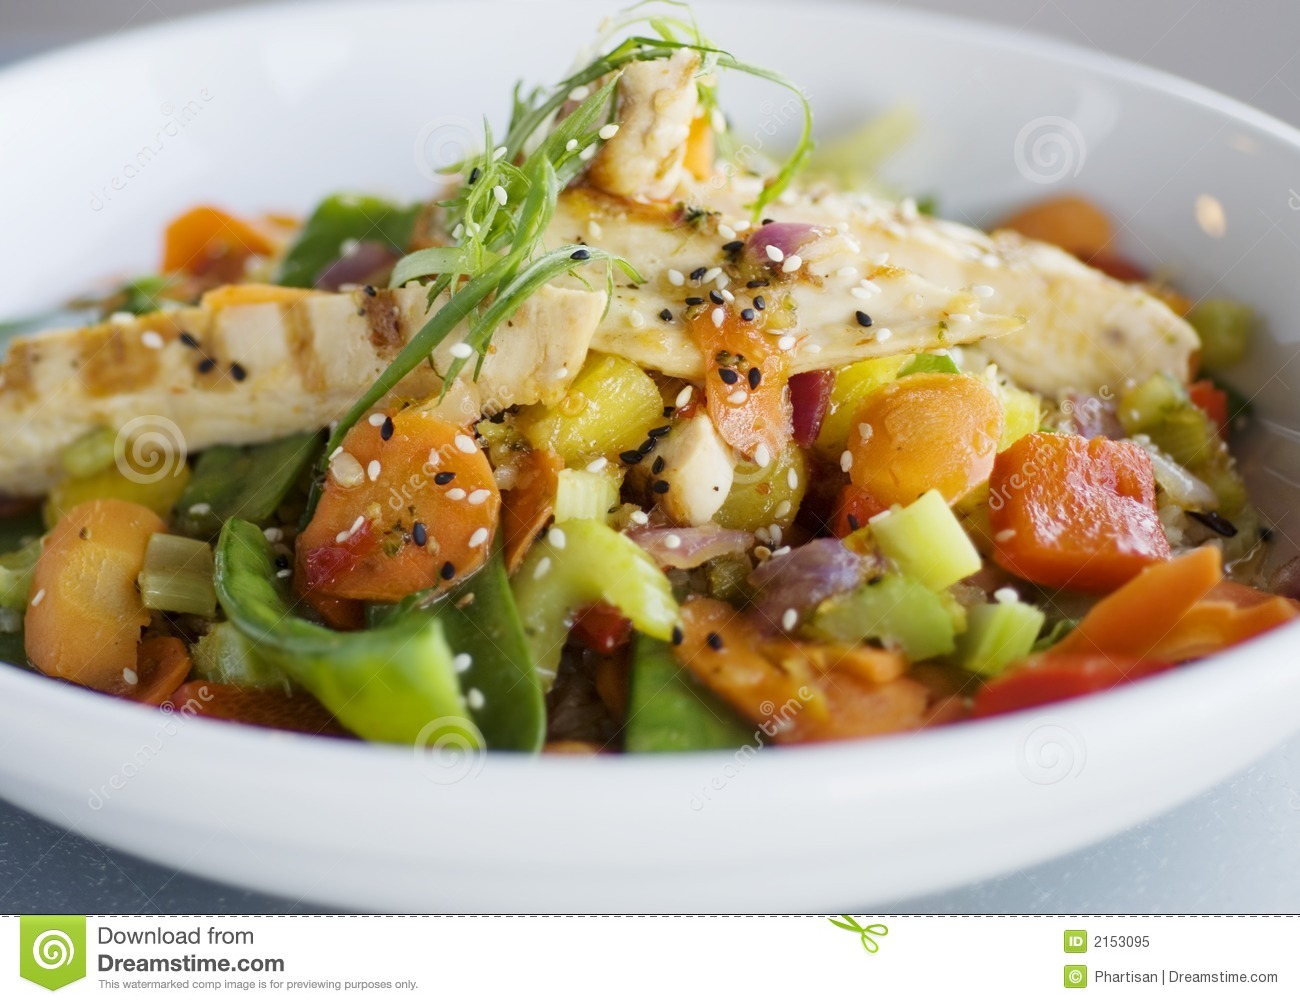 Delicious Healthy Food Royalty Free Stock Photo Image 2153095 with Delicious Healthy Food